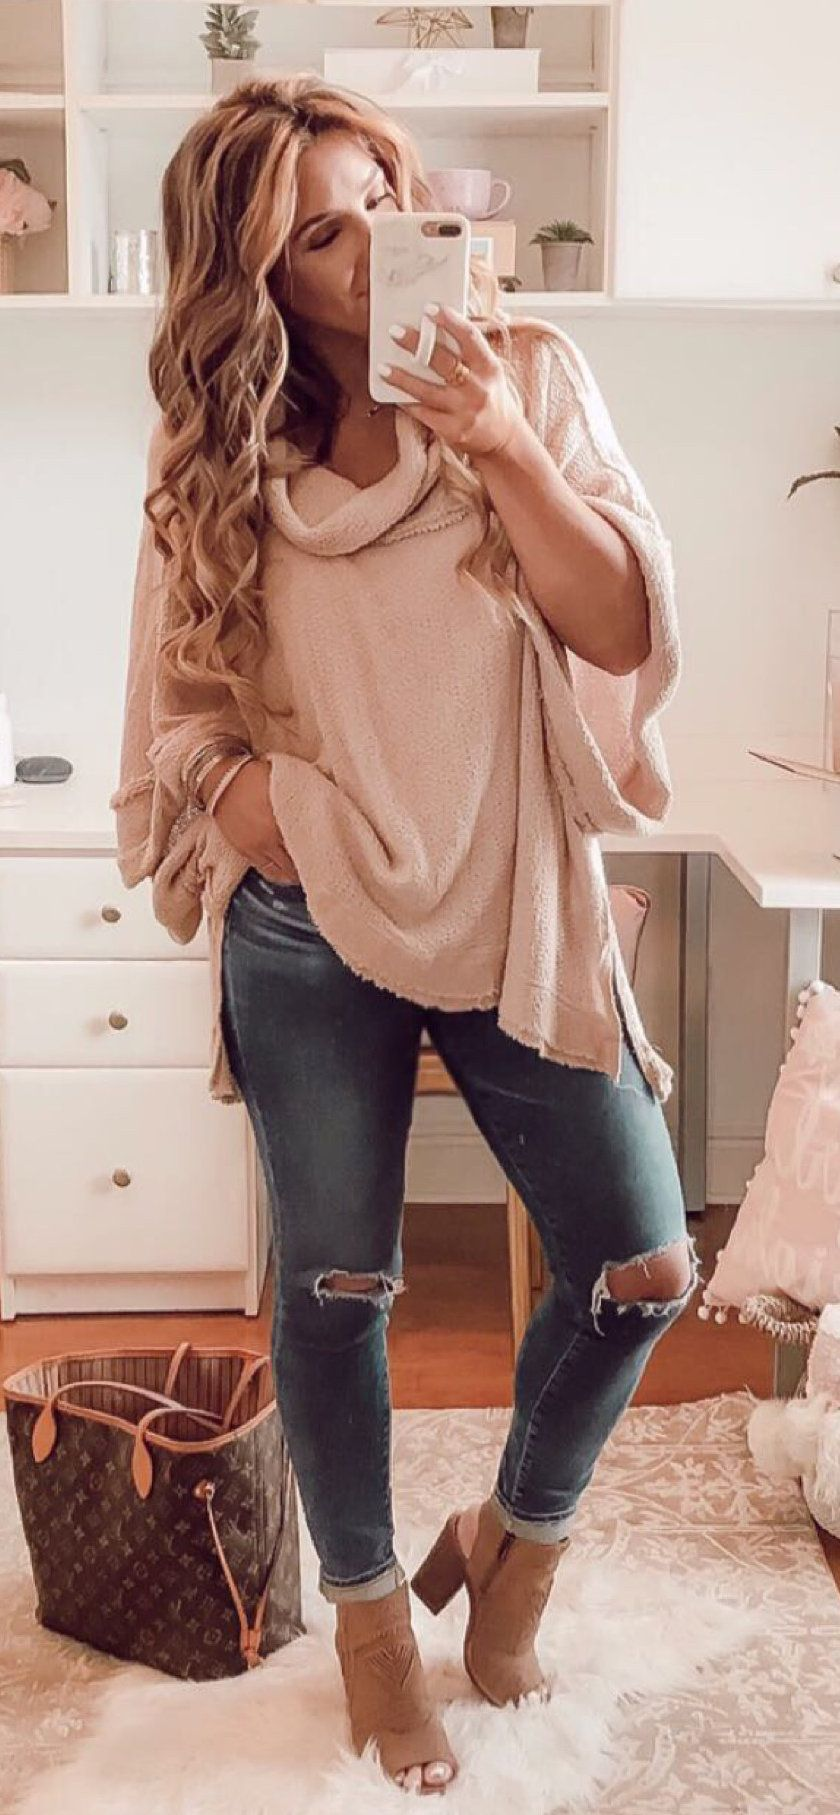 blue distressed jeans and beige long-sleeved top